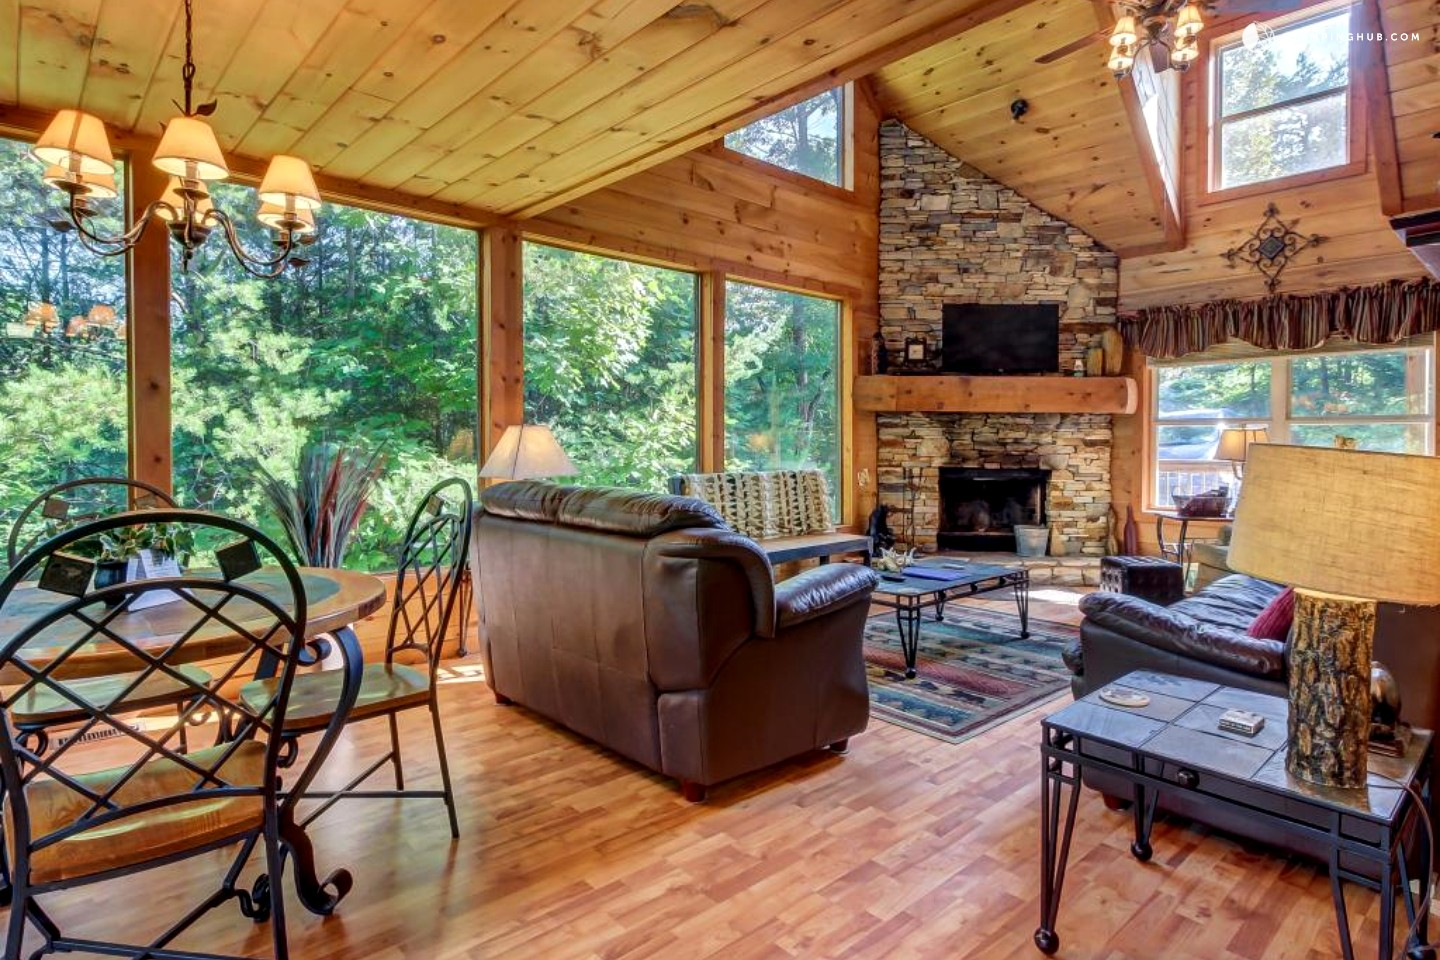 Pet friendly cabin in sautee nacoochee georgia - 8 bedroom cabins in north georgia ...